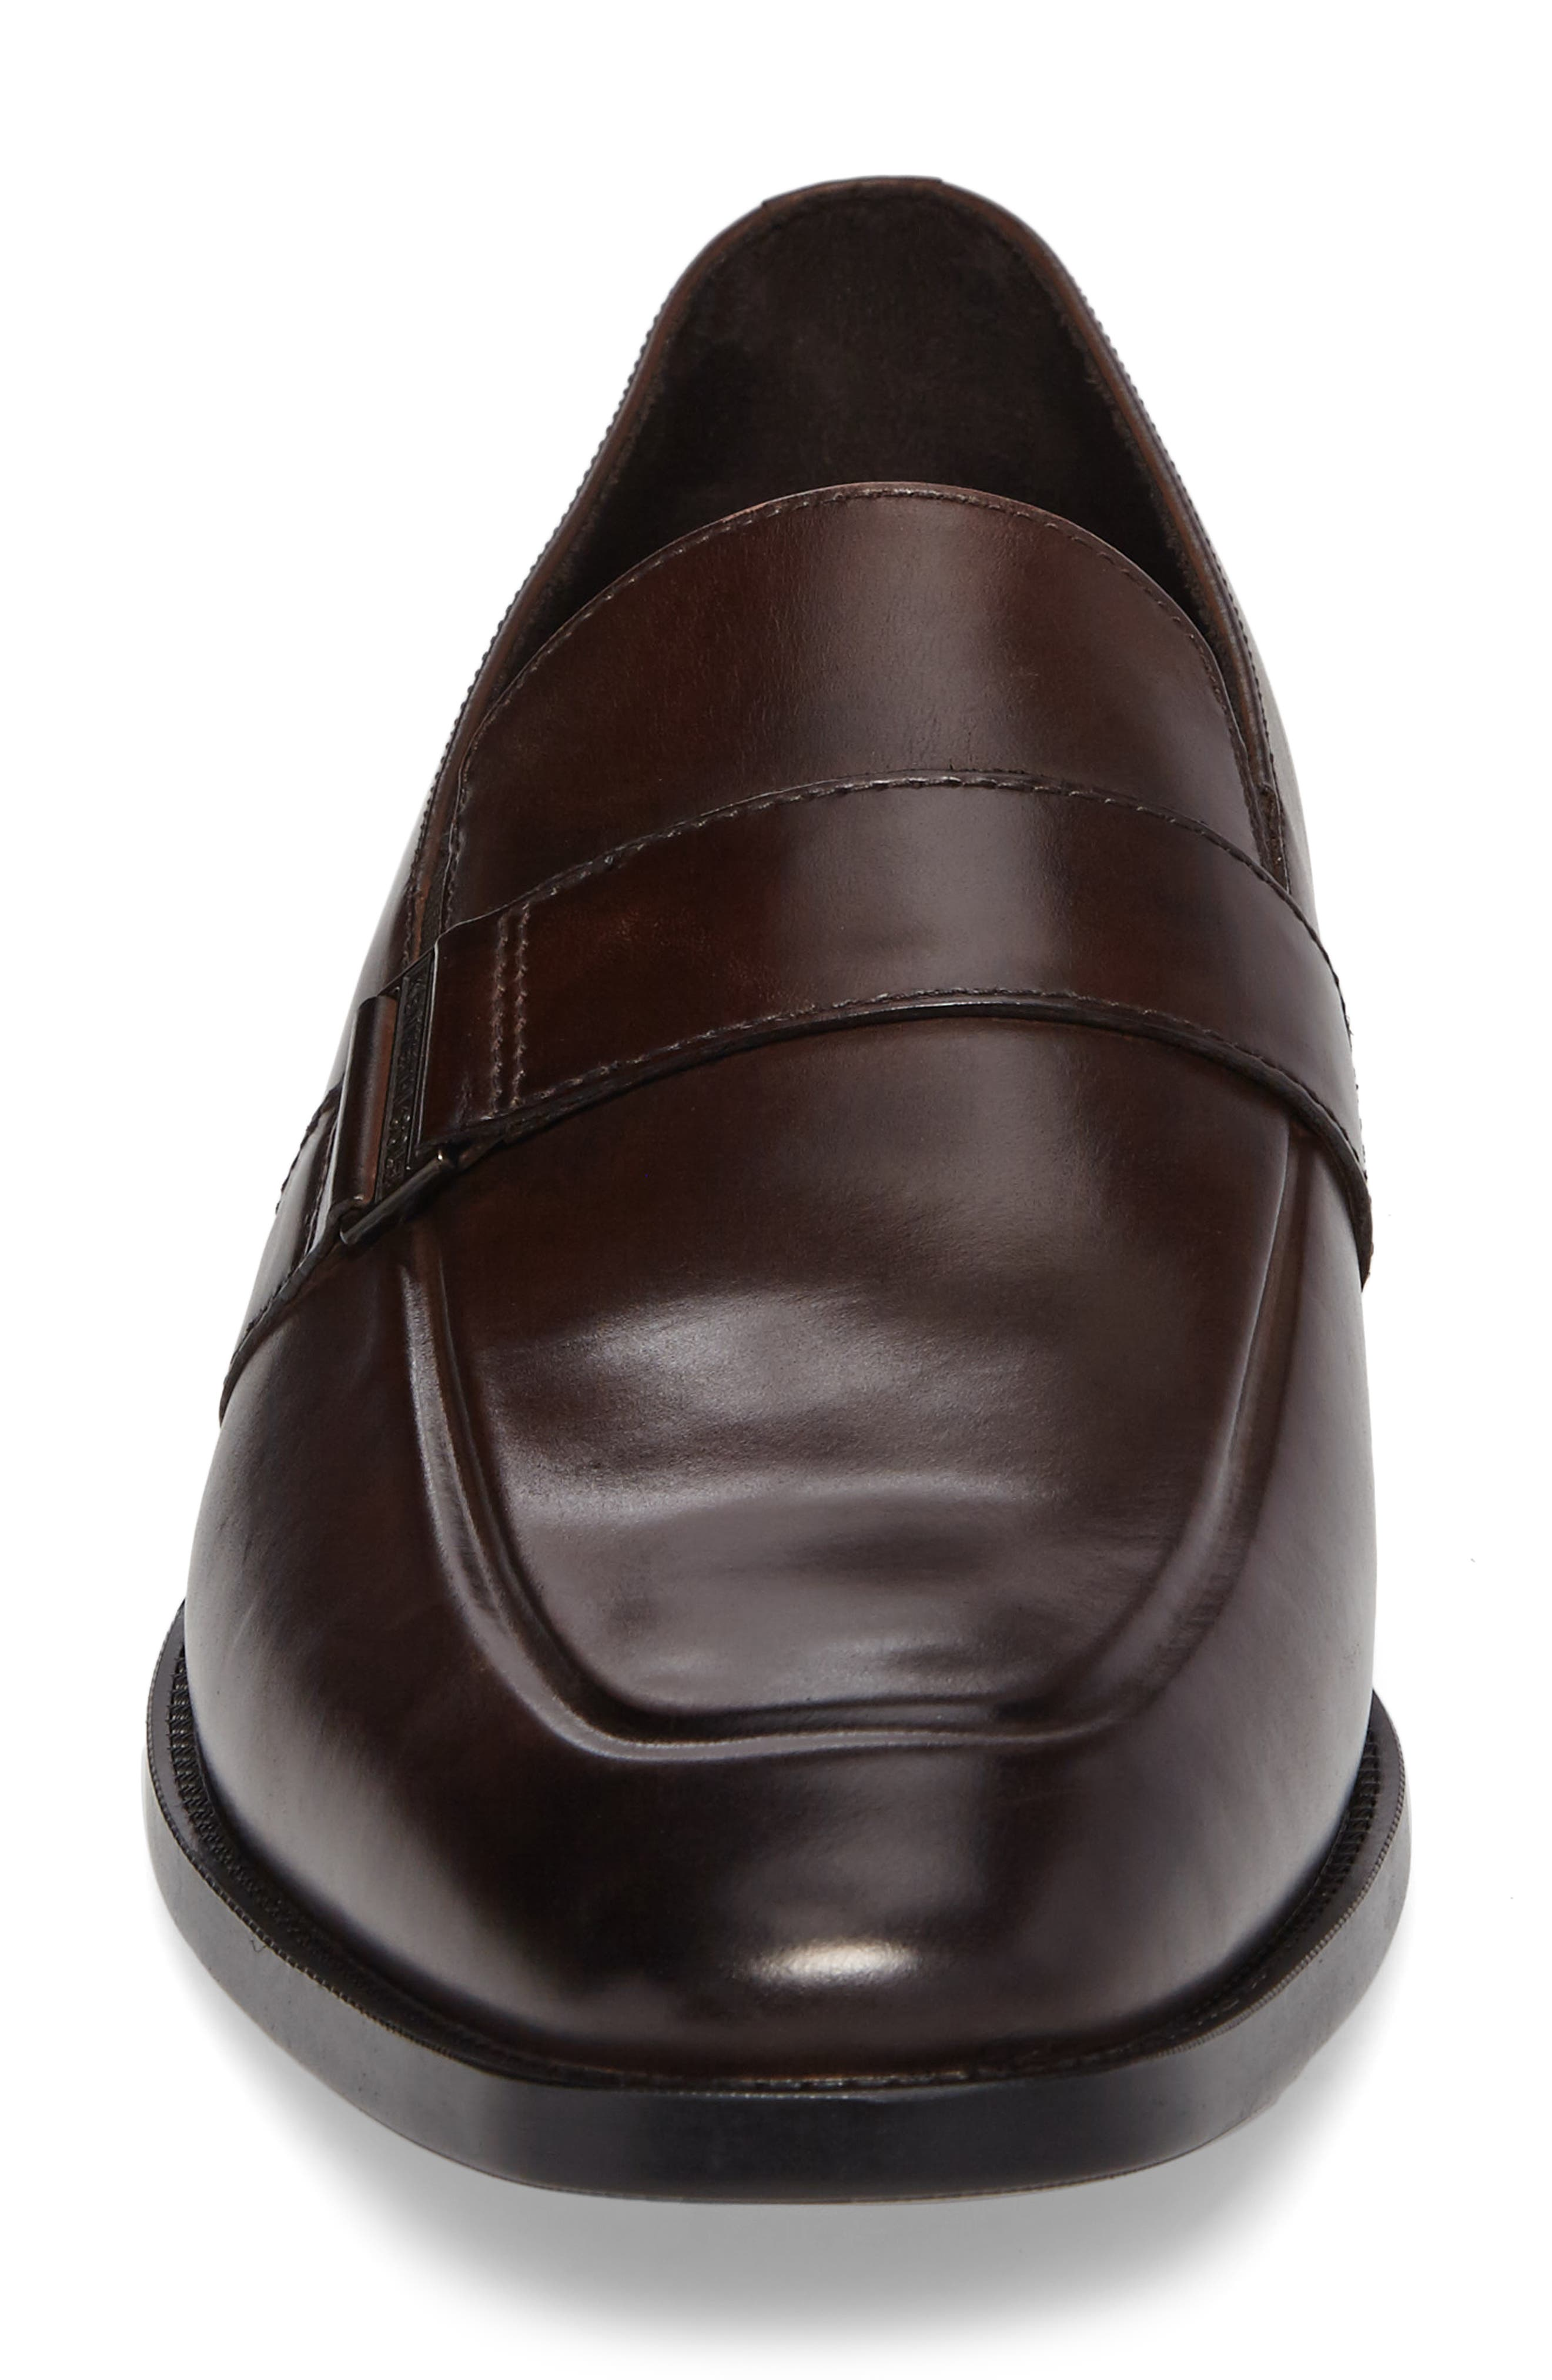 Apron Toe Loafer,                             Alternate thumbnail 4, color,                             Brown Leather